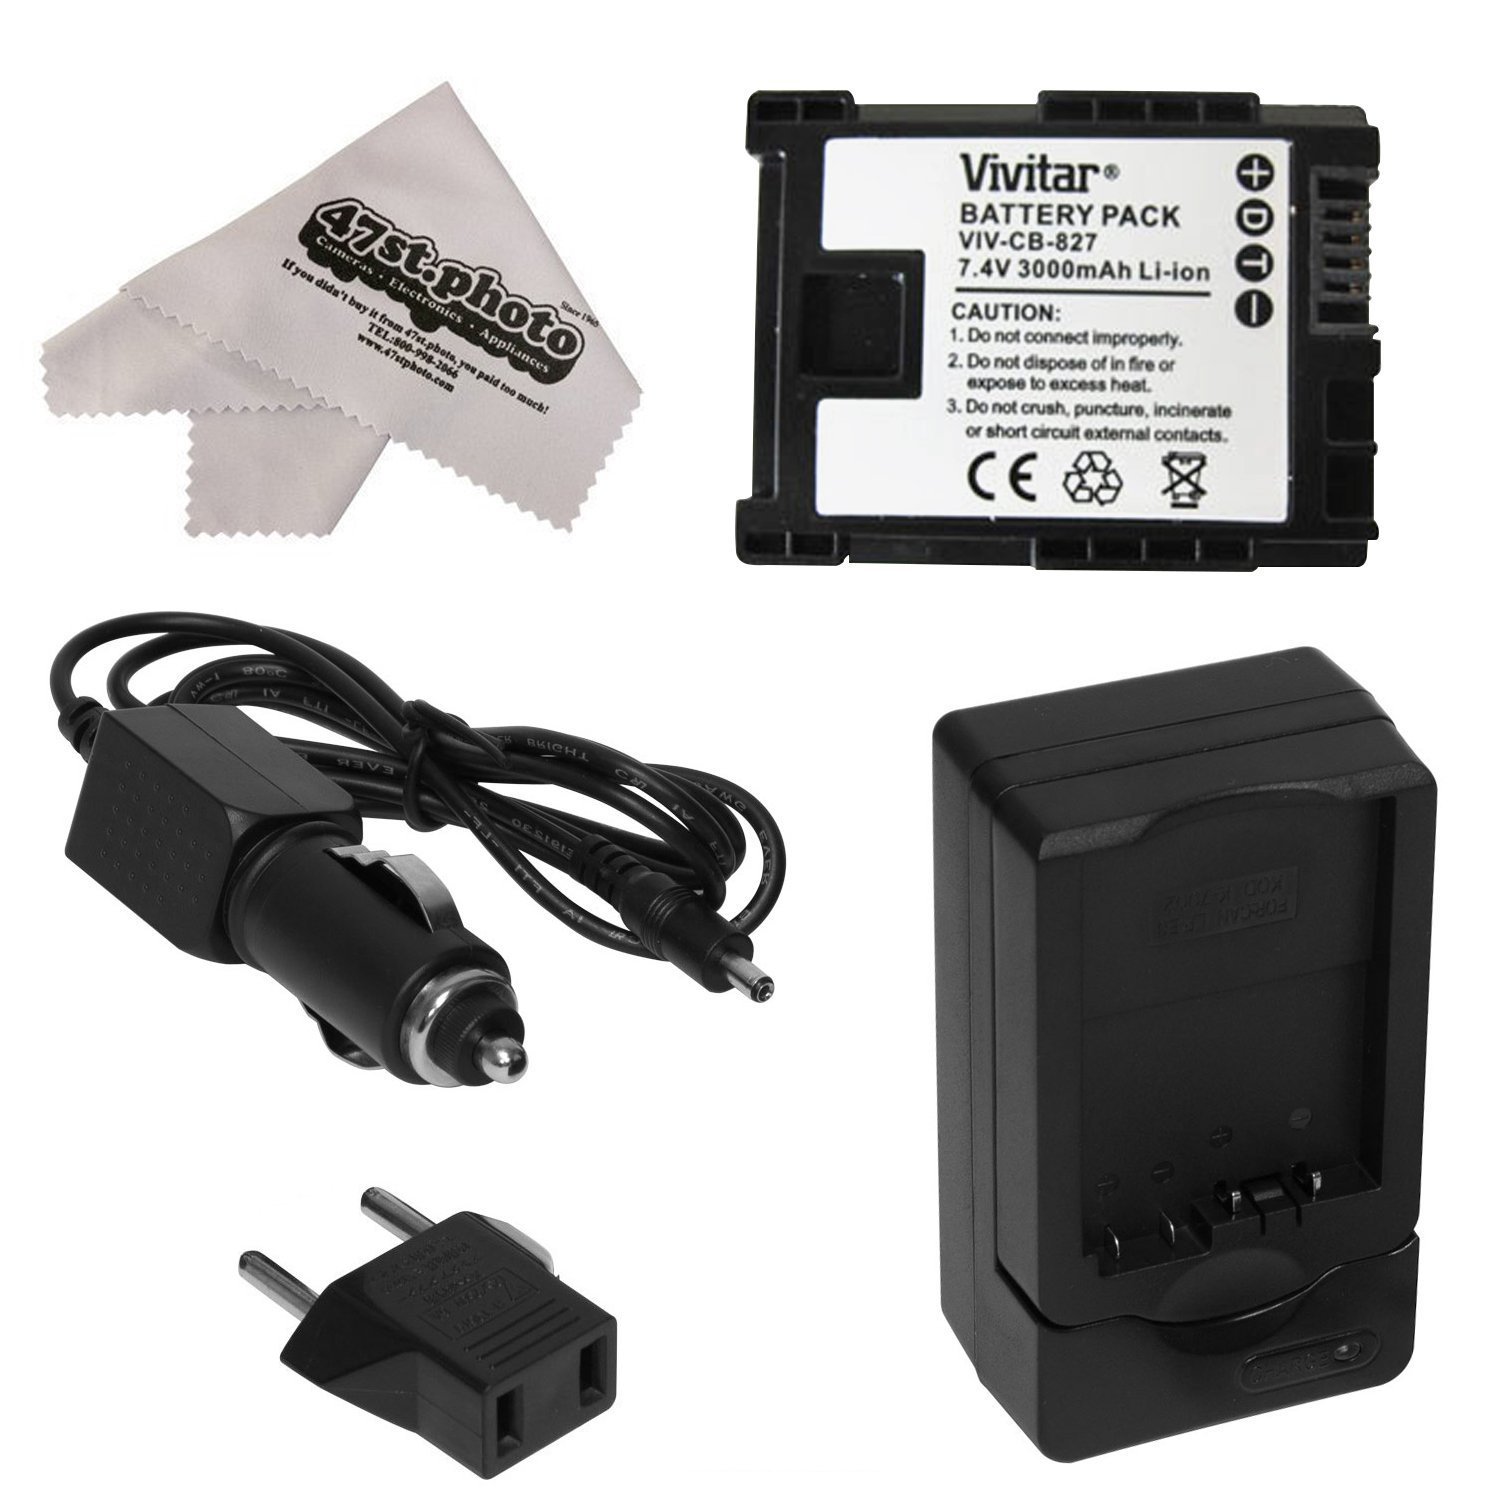 Canon BP-827 BP827 Lithium Ion Replacement Battery Pack + Charger for Canon HF S10 S11 S20 S21 S30 G10 G20 S100 M30 M31 M32 M40 M41 M300 M400 XA10 Camcorders with Microfiber Cloth